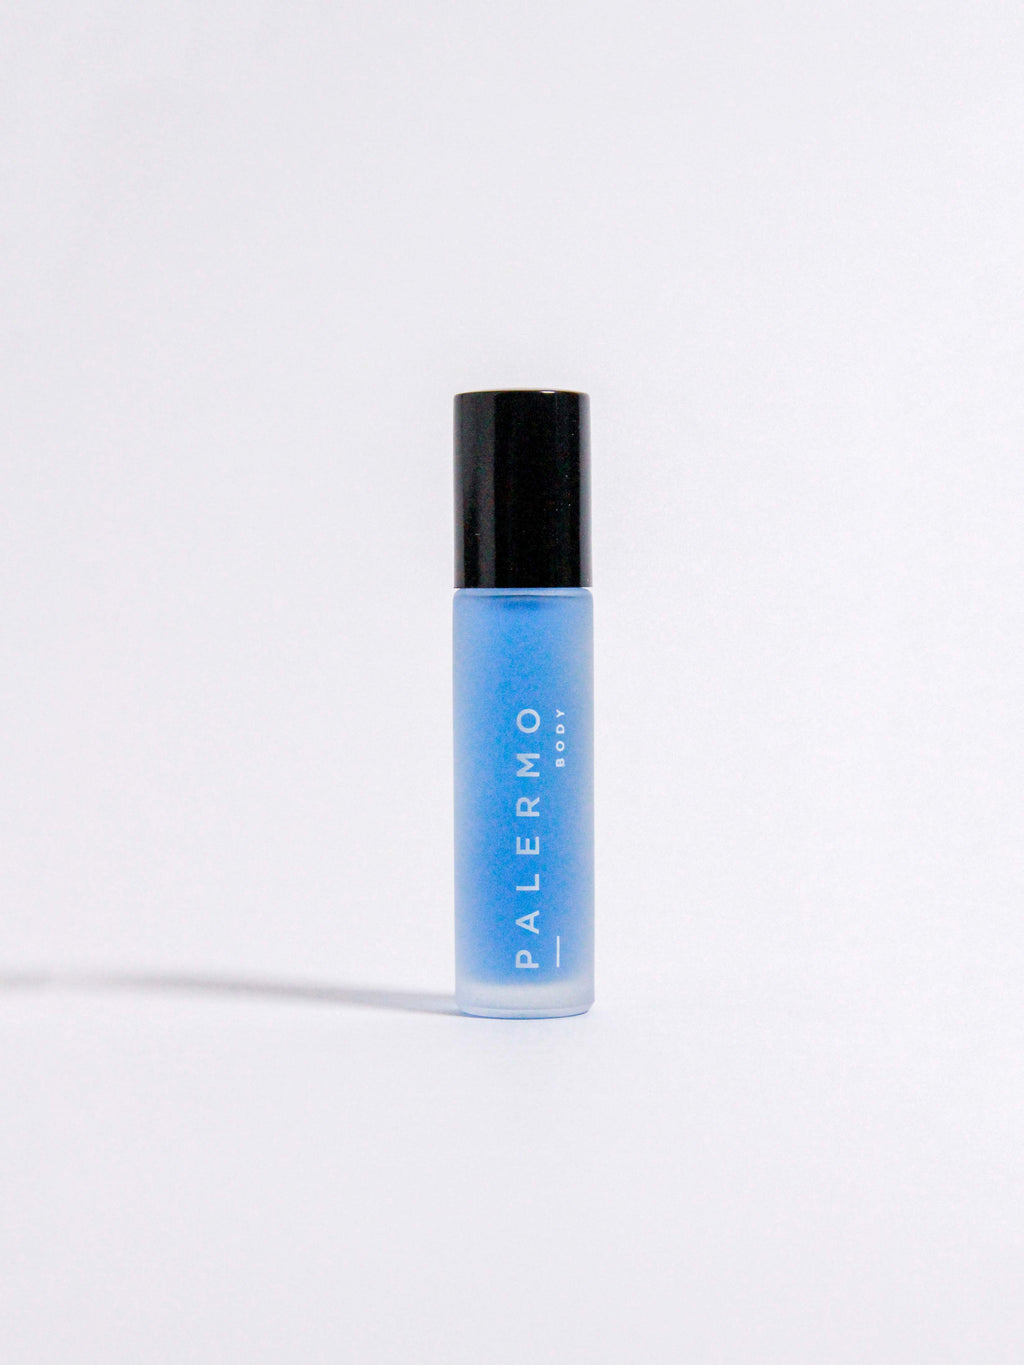 Tranquility Aromatherapy Oil